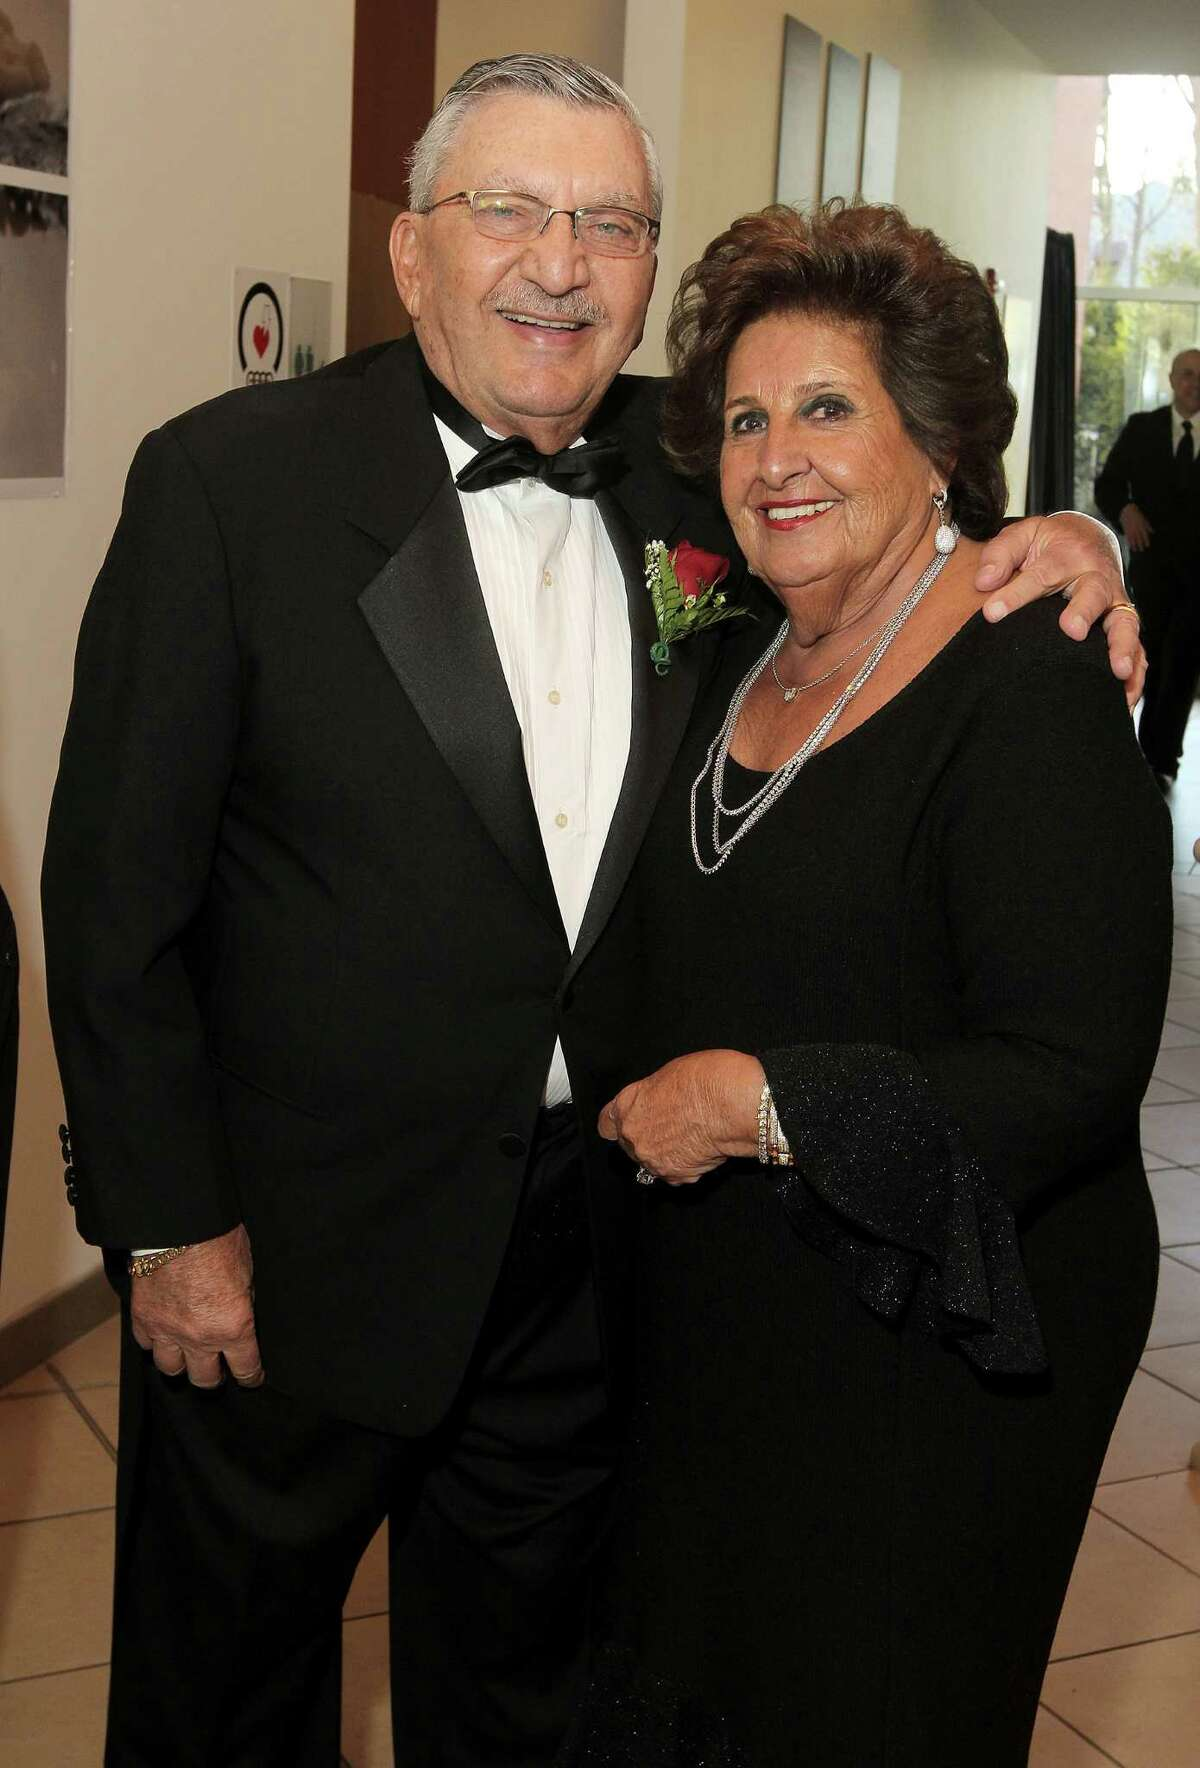 Philanthropists Morris and Esther Massry during the Massry Center for the Arts fifth anniversary celebration at the College of Saint Rose in April 2013. Morris Massry died in 2018. (Photo by Joe Putrock/Special to the Times Union)